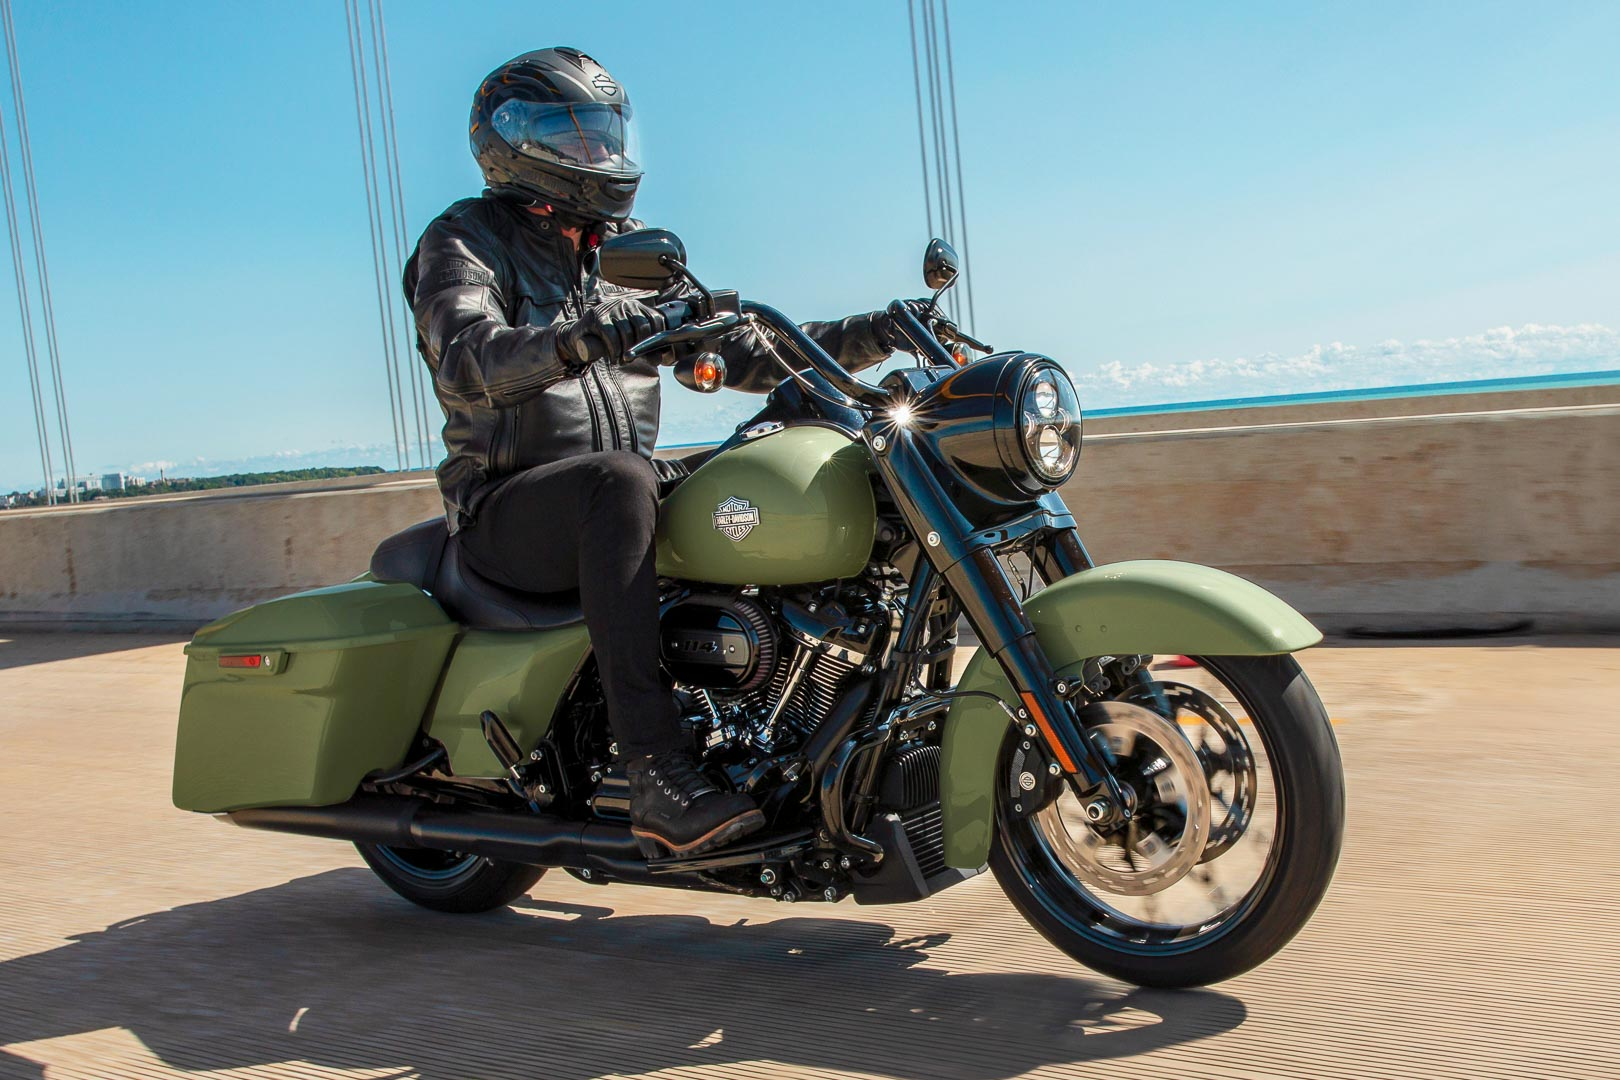 2021 Harley-Davidson Road King Special First Look: Prices, MSPR, Colors, Specs, Photos